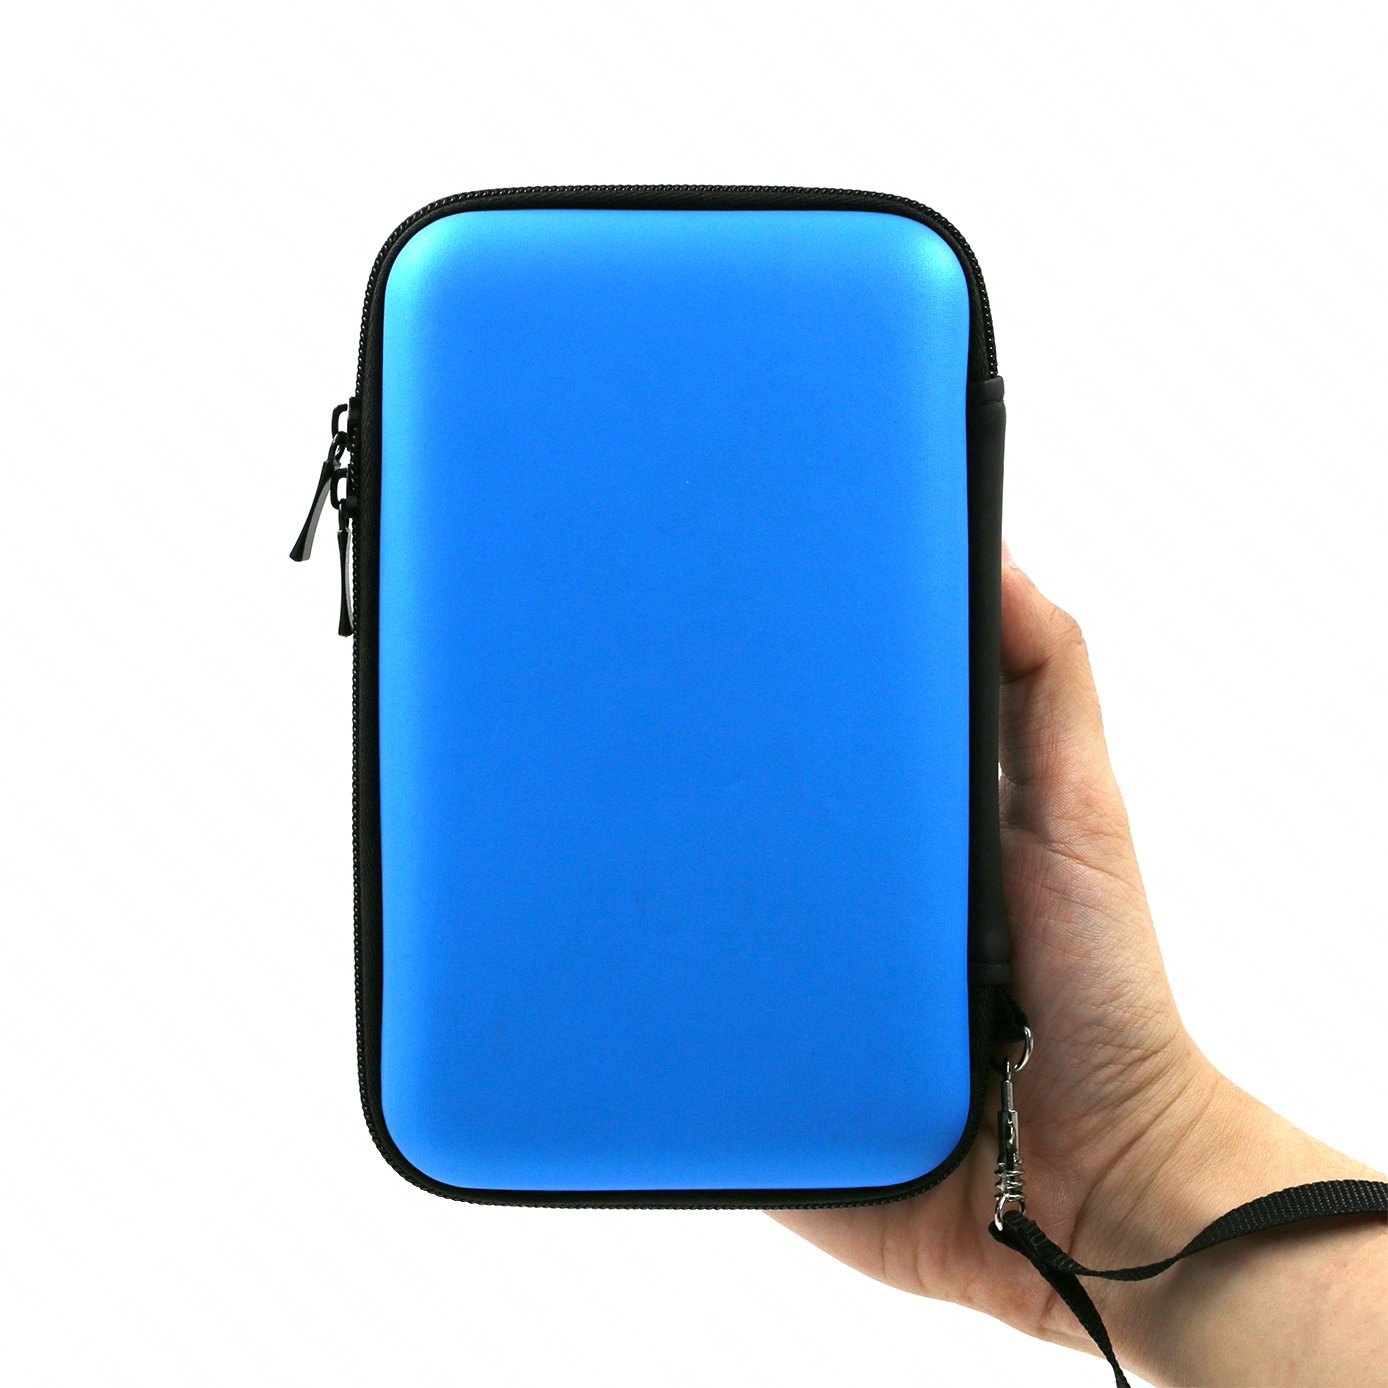 ADVcer 3DS Case, EVA Waterproof Hard Shield Protective Carrying Case with Detachable Hand Wrist Strap for Nintendo New 3DS XL, New 3DS, 3DS XL, 3DS, 3DS LL or 2DS XL or DSi, DS Lite (Blue)